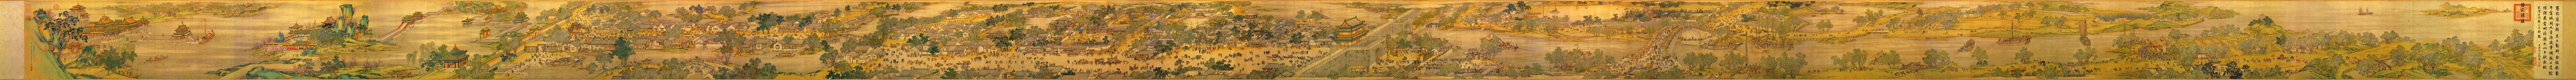 Panorama of Along the River During Qingming Festival, an 11-meter handscroll by artists of the Qing court